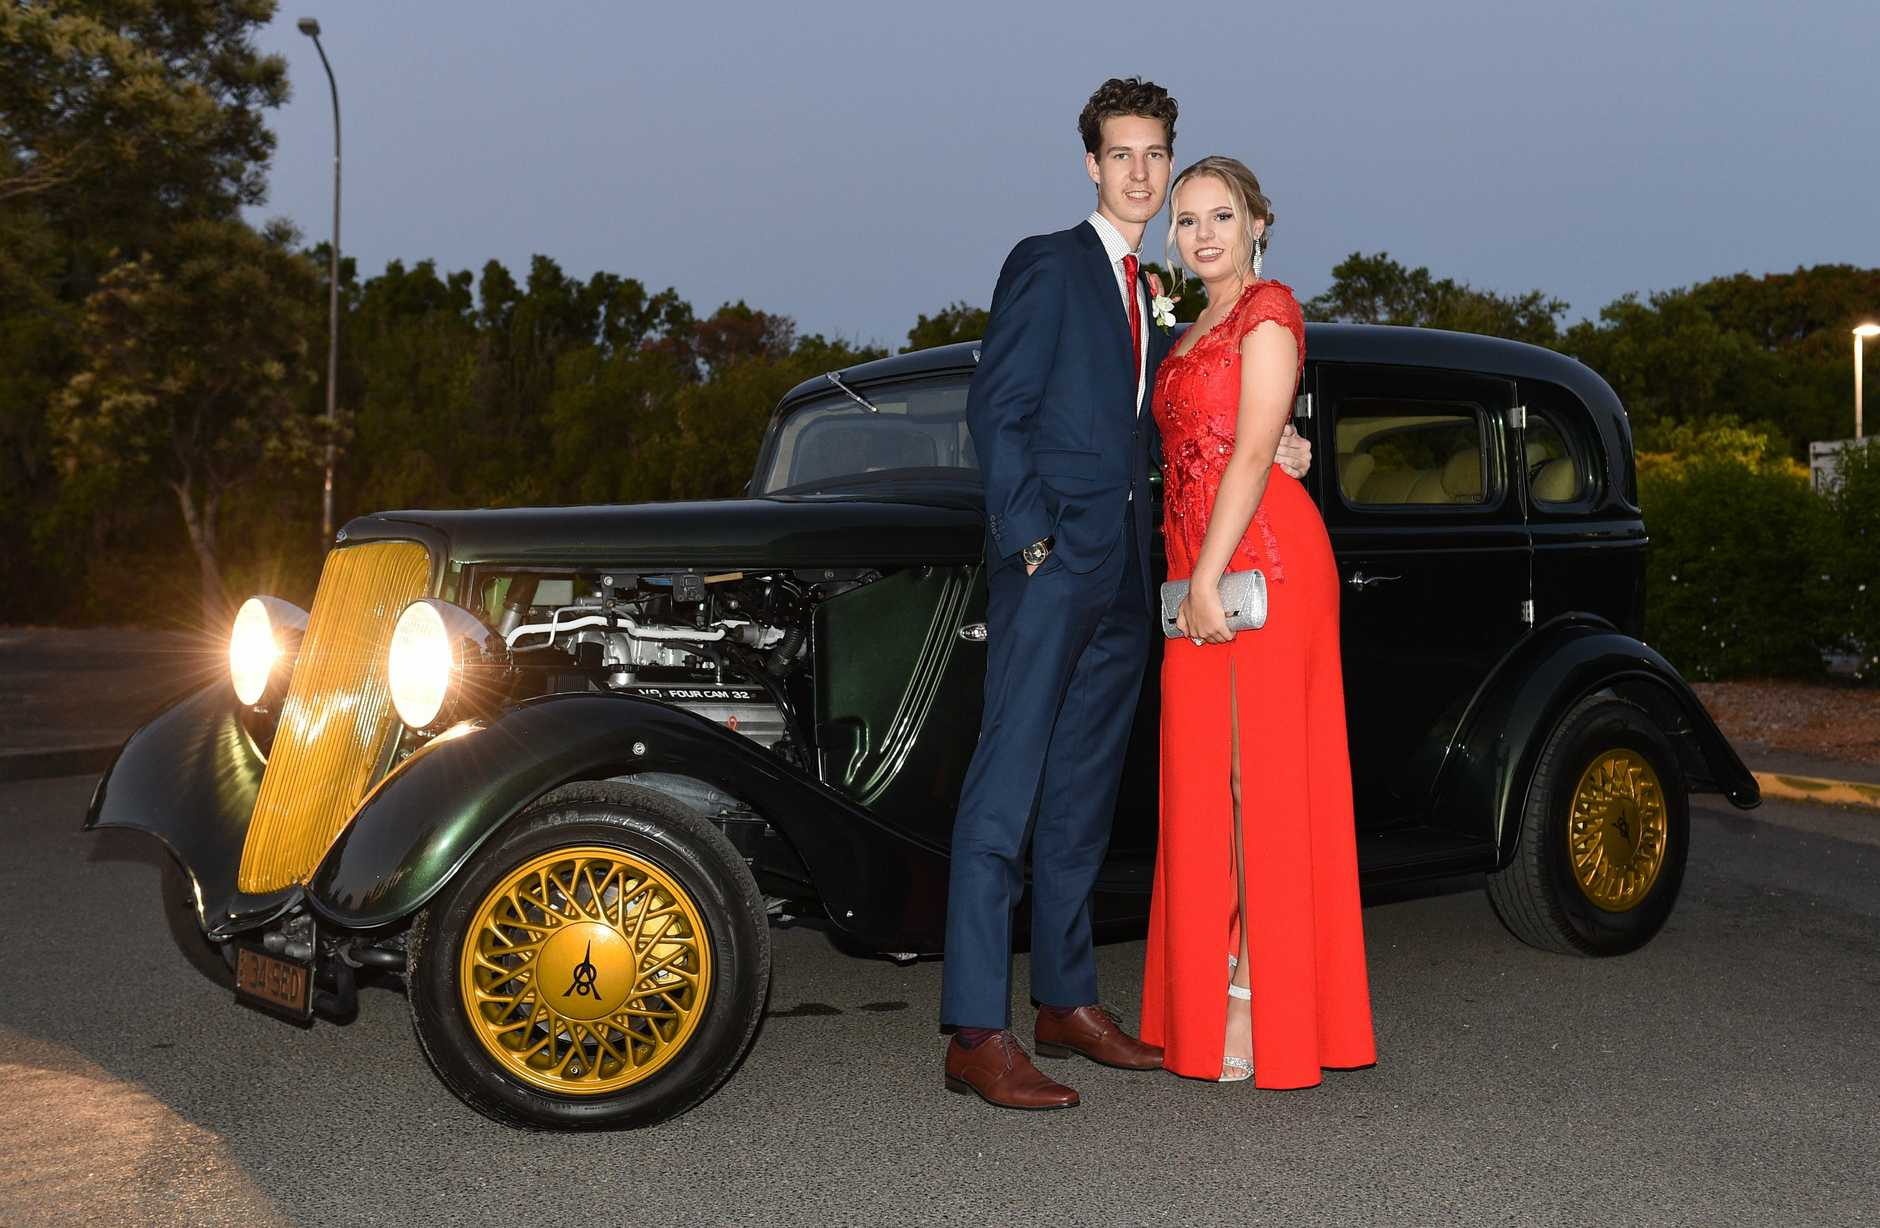 Anton Cross and Caitlin Byrne arriving in style.